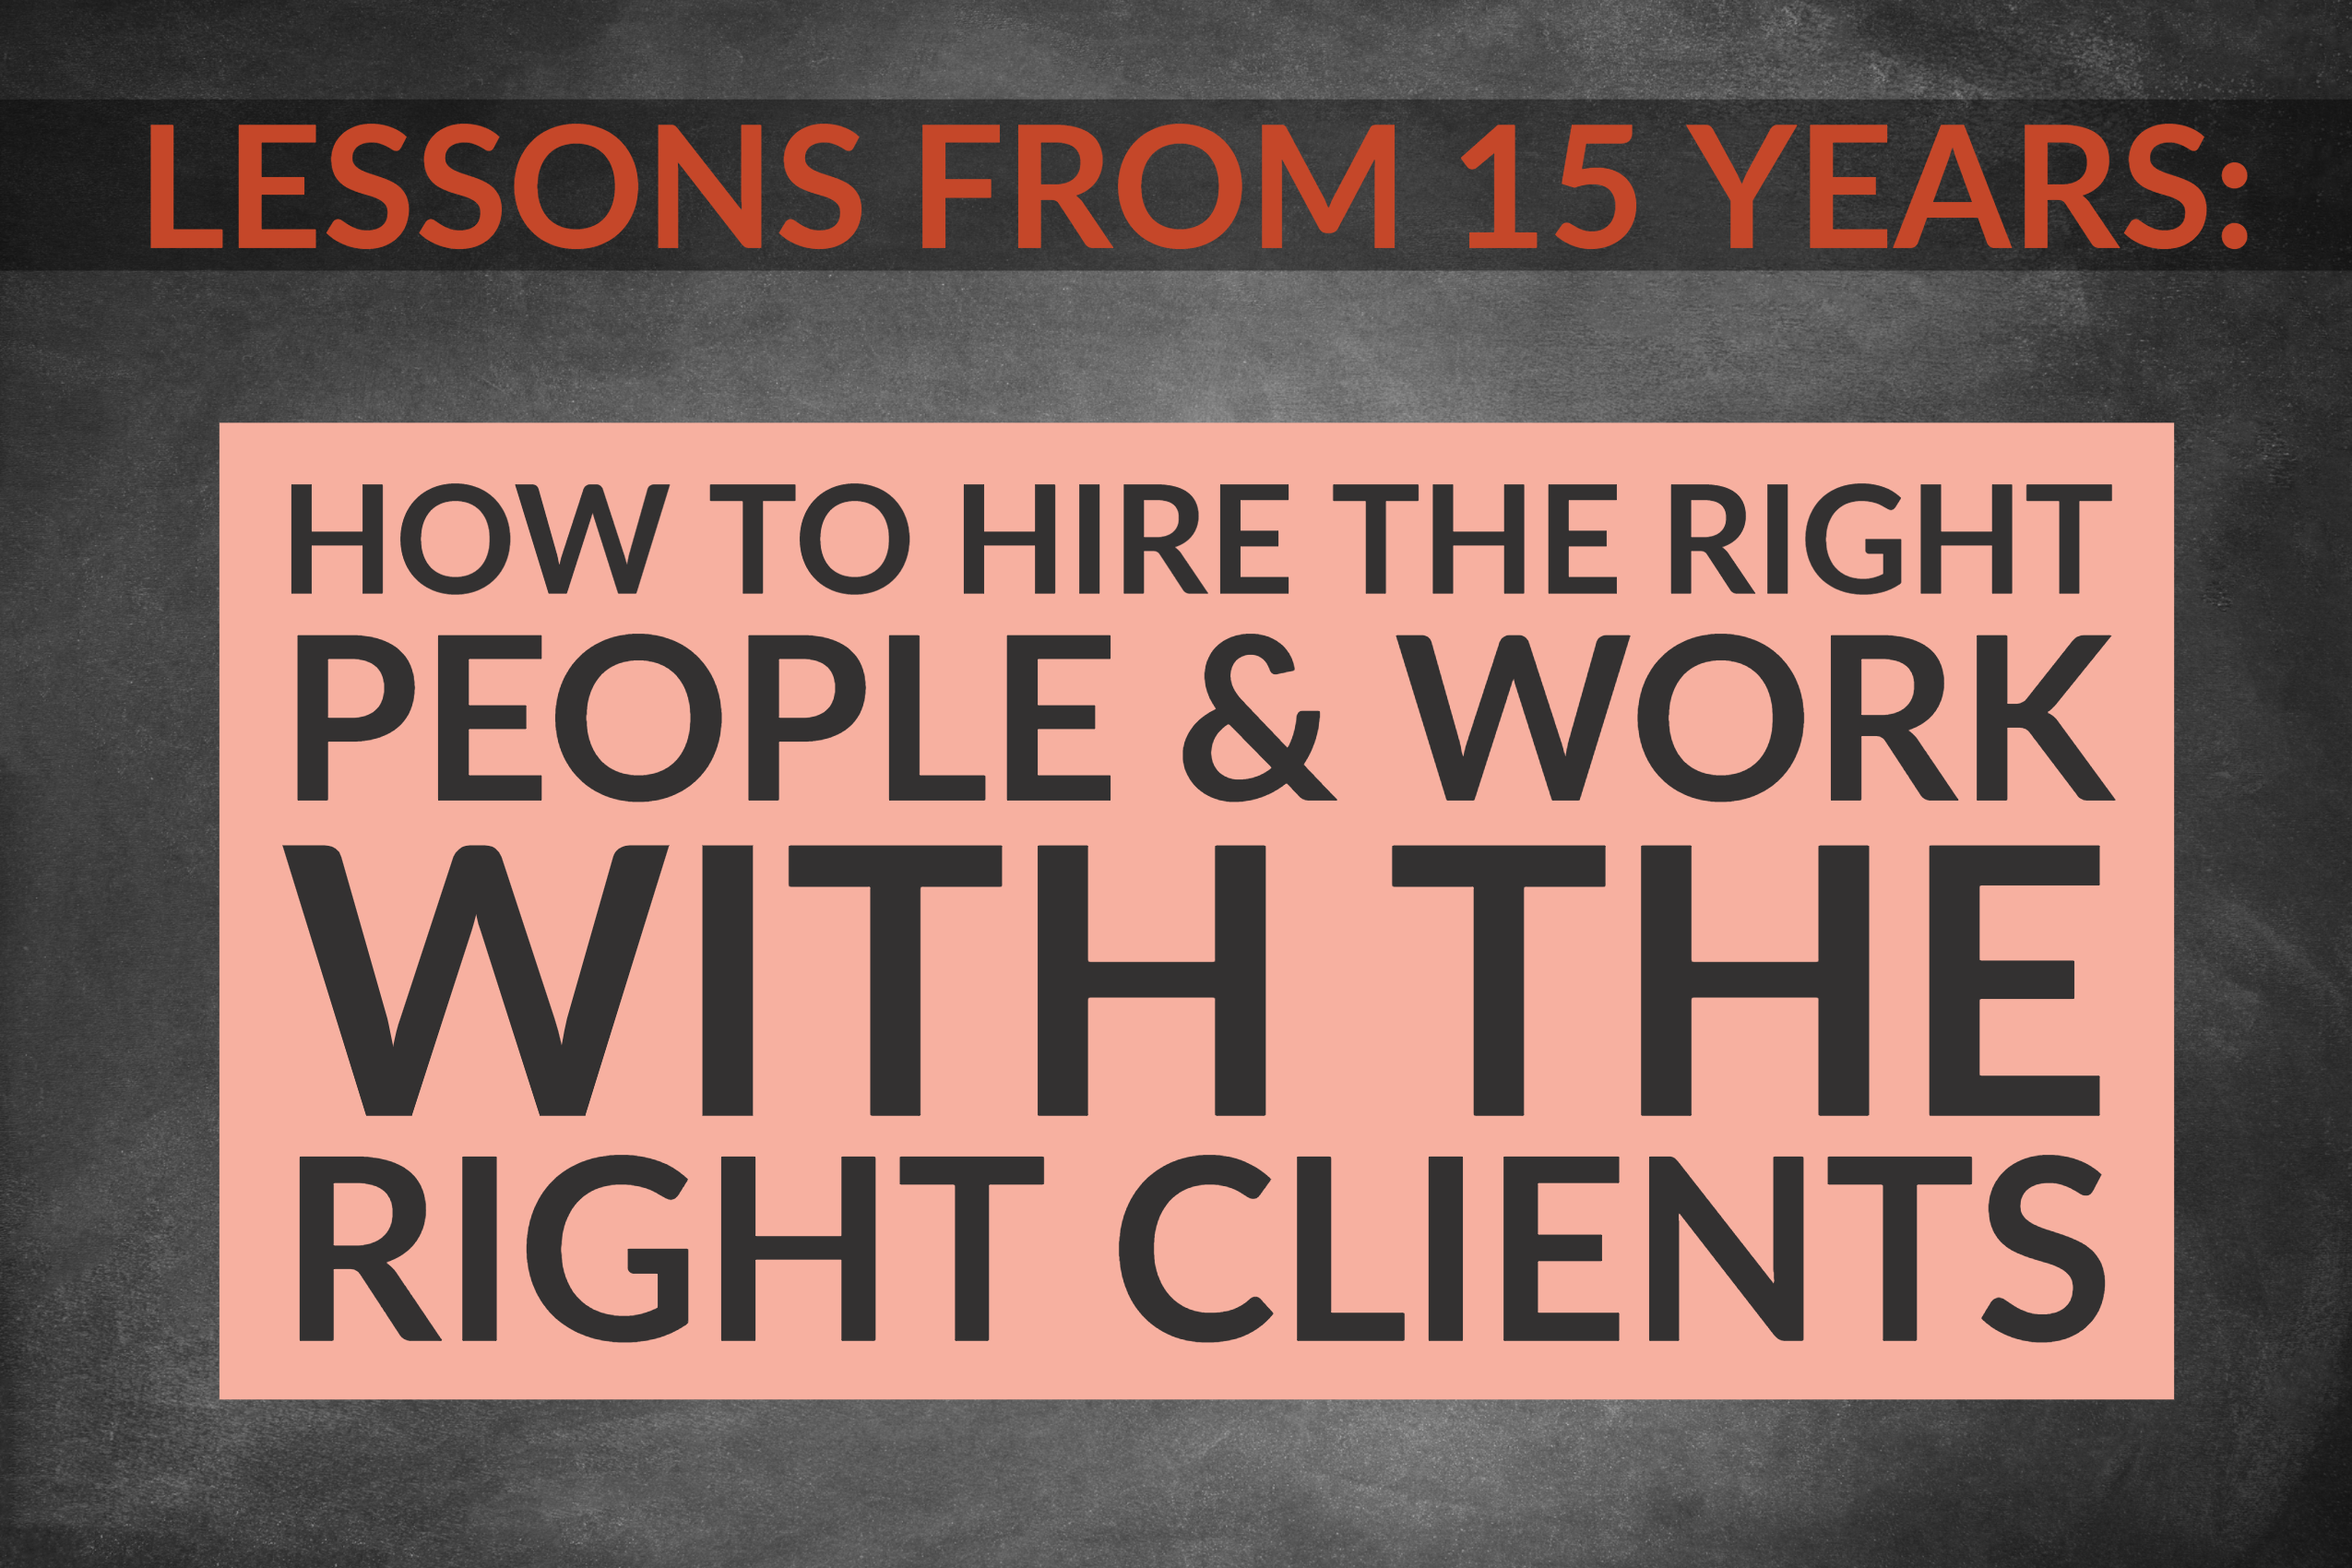 Lessons From 15 Years_ How To Hire The Right People & Work With The Right Clients